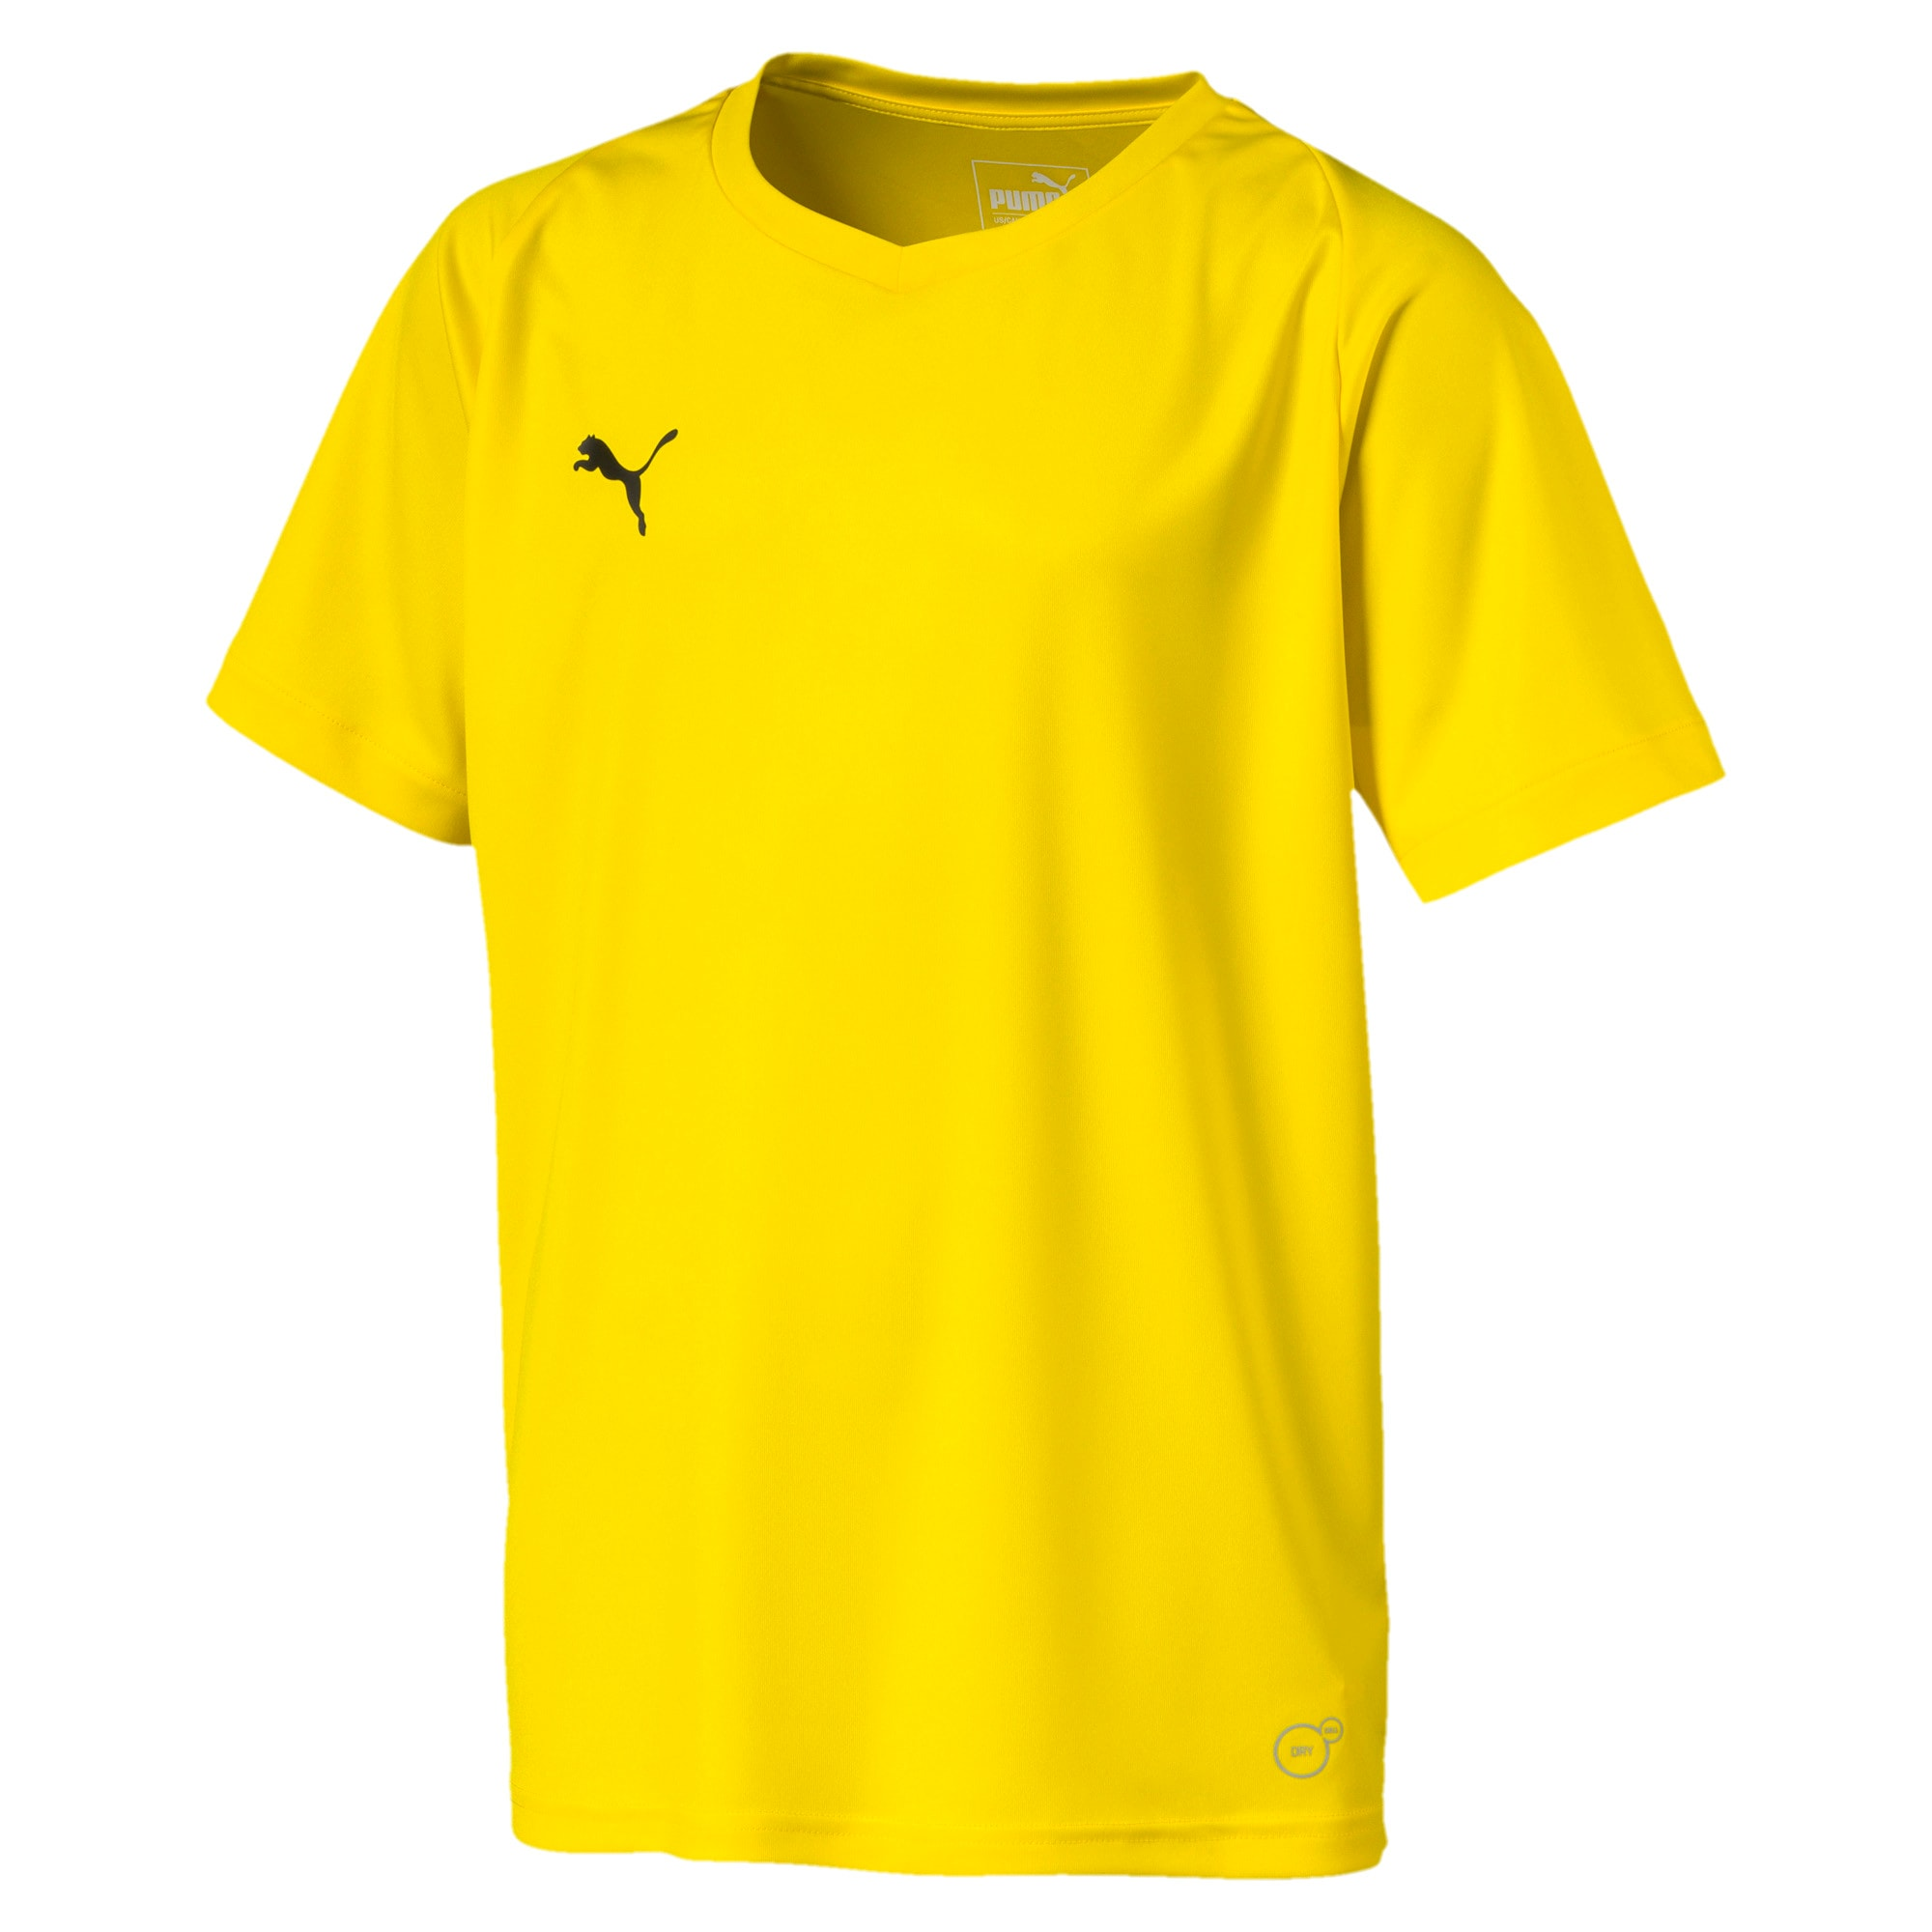 Liga Core Junior Football Jersey, Cyber Yellow-Puma Black, large